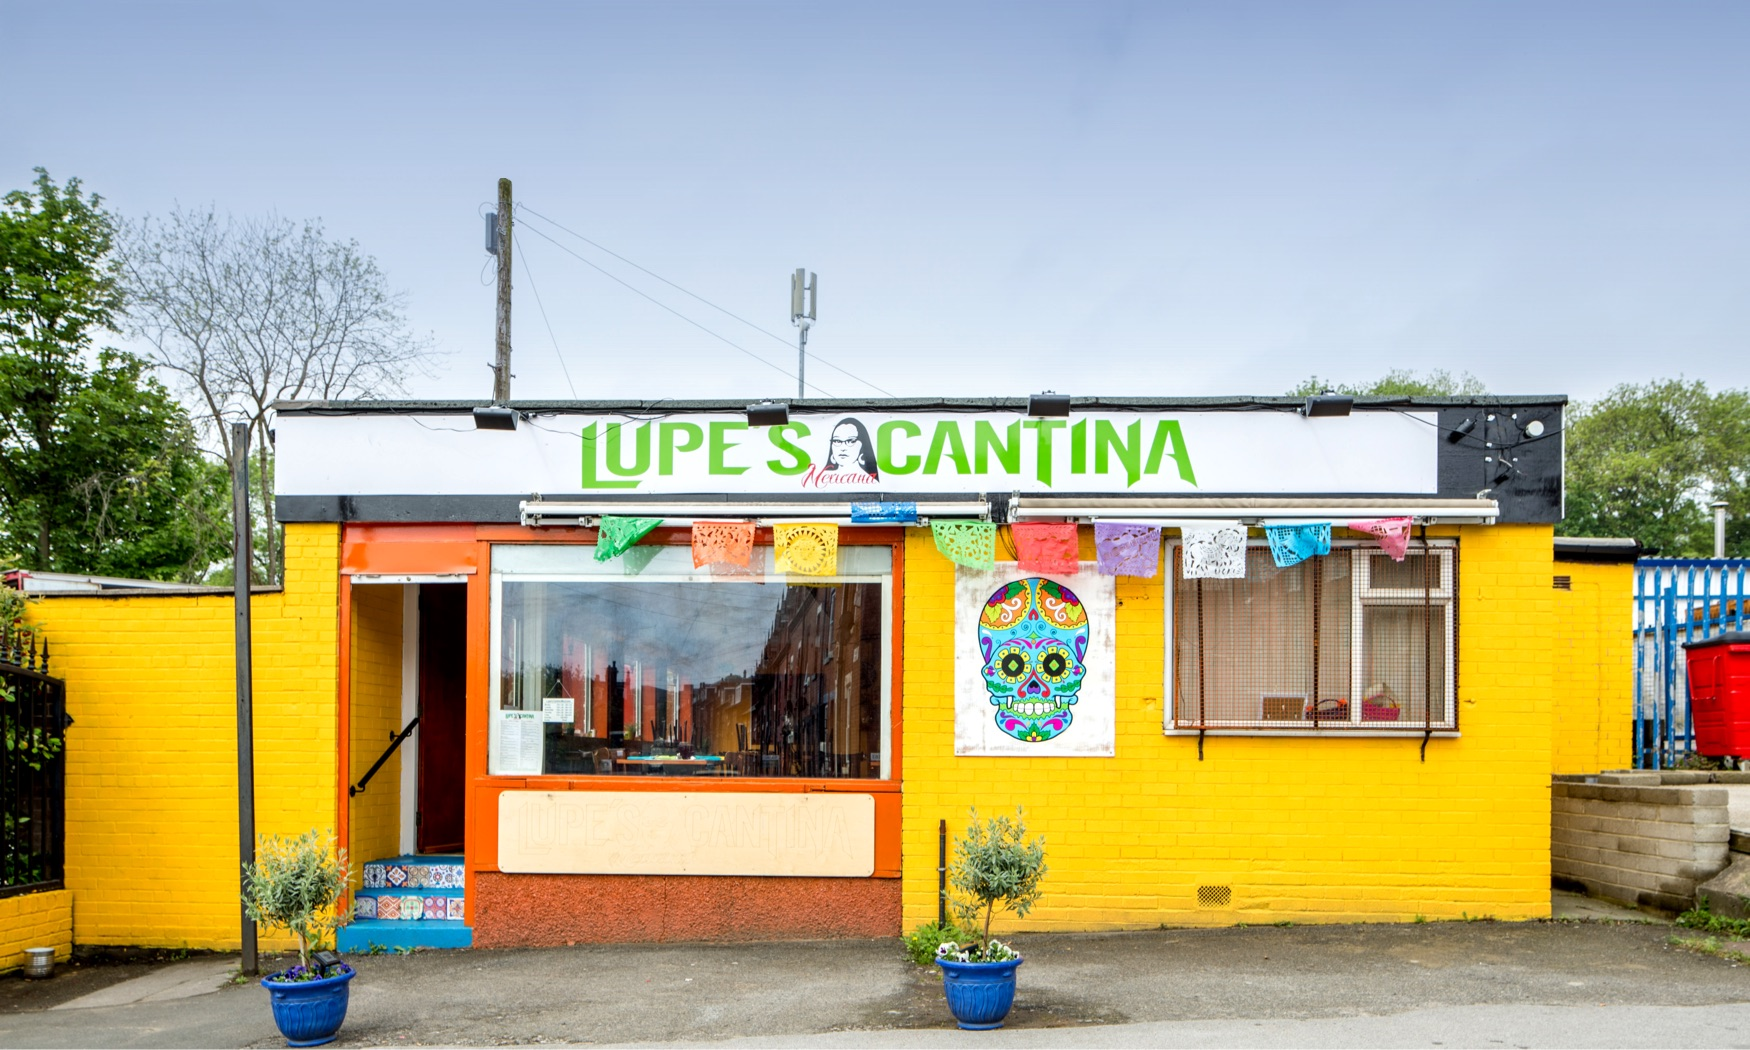 Lupes Cantina Mexicana in Leeds